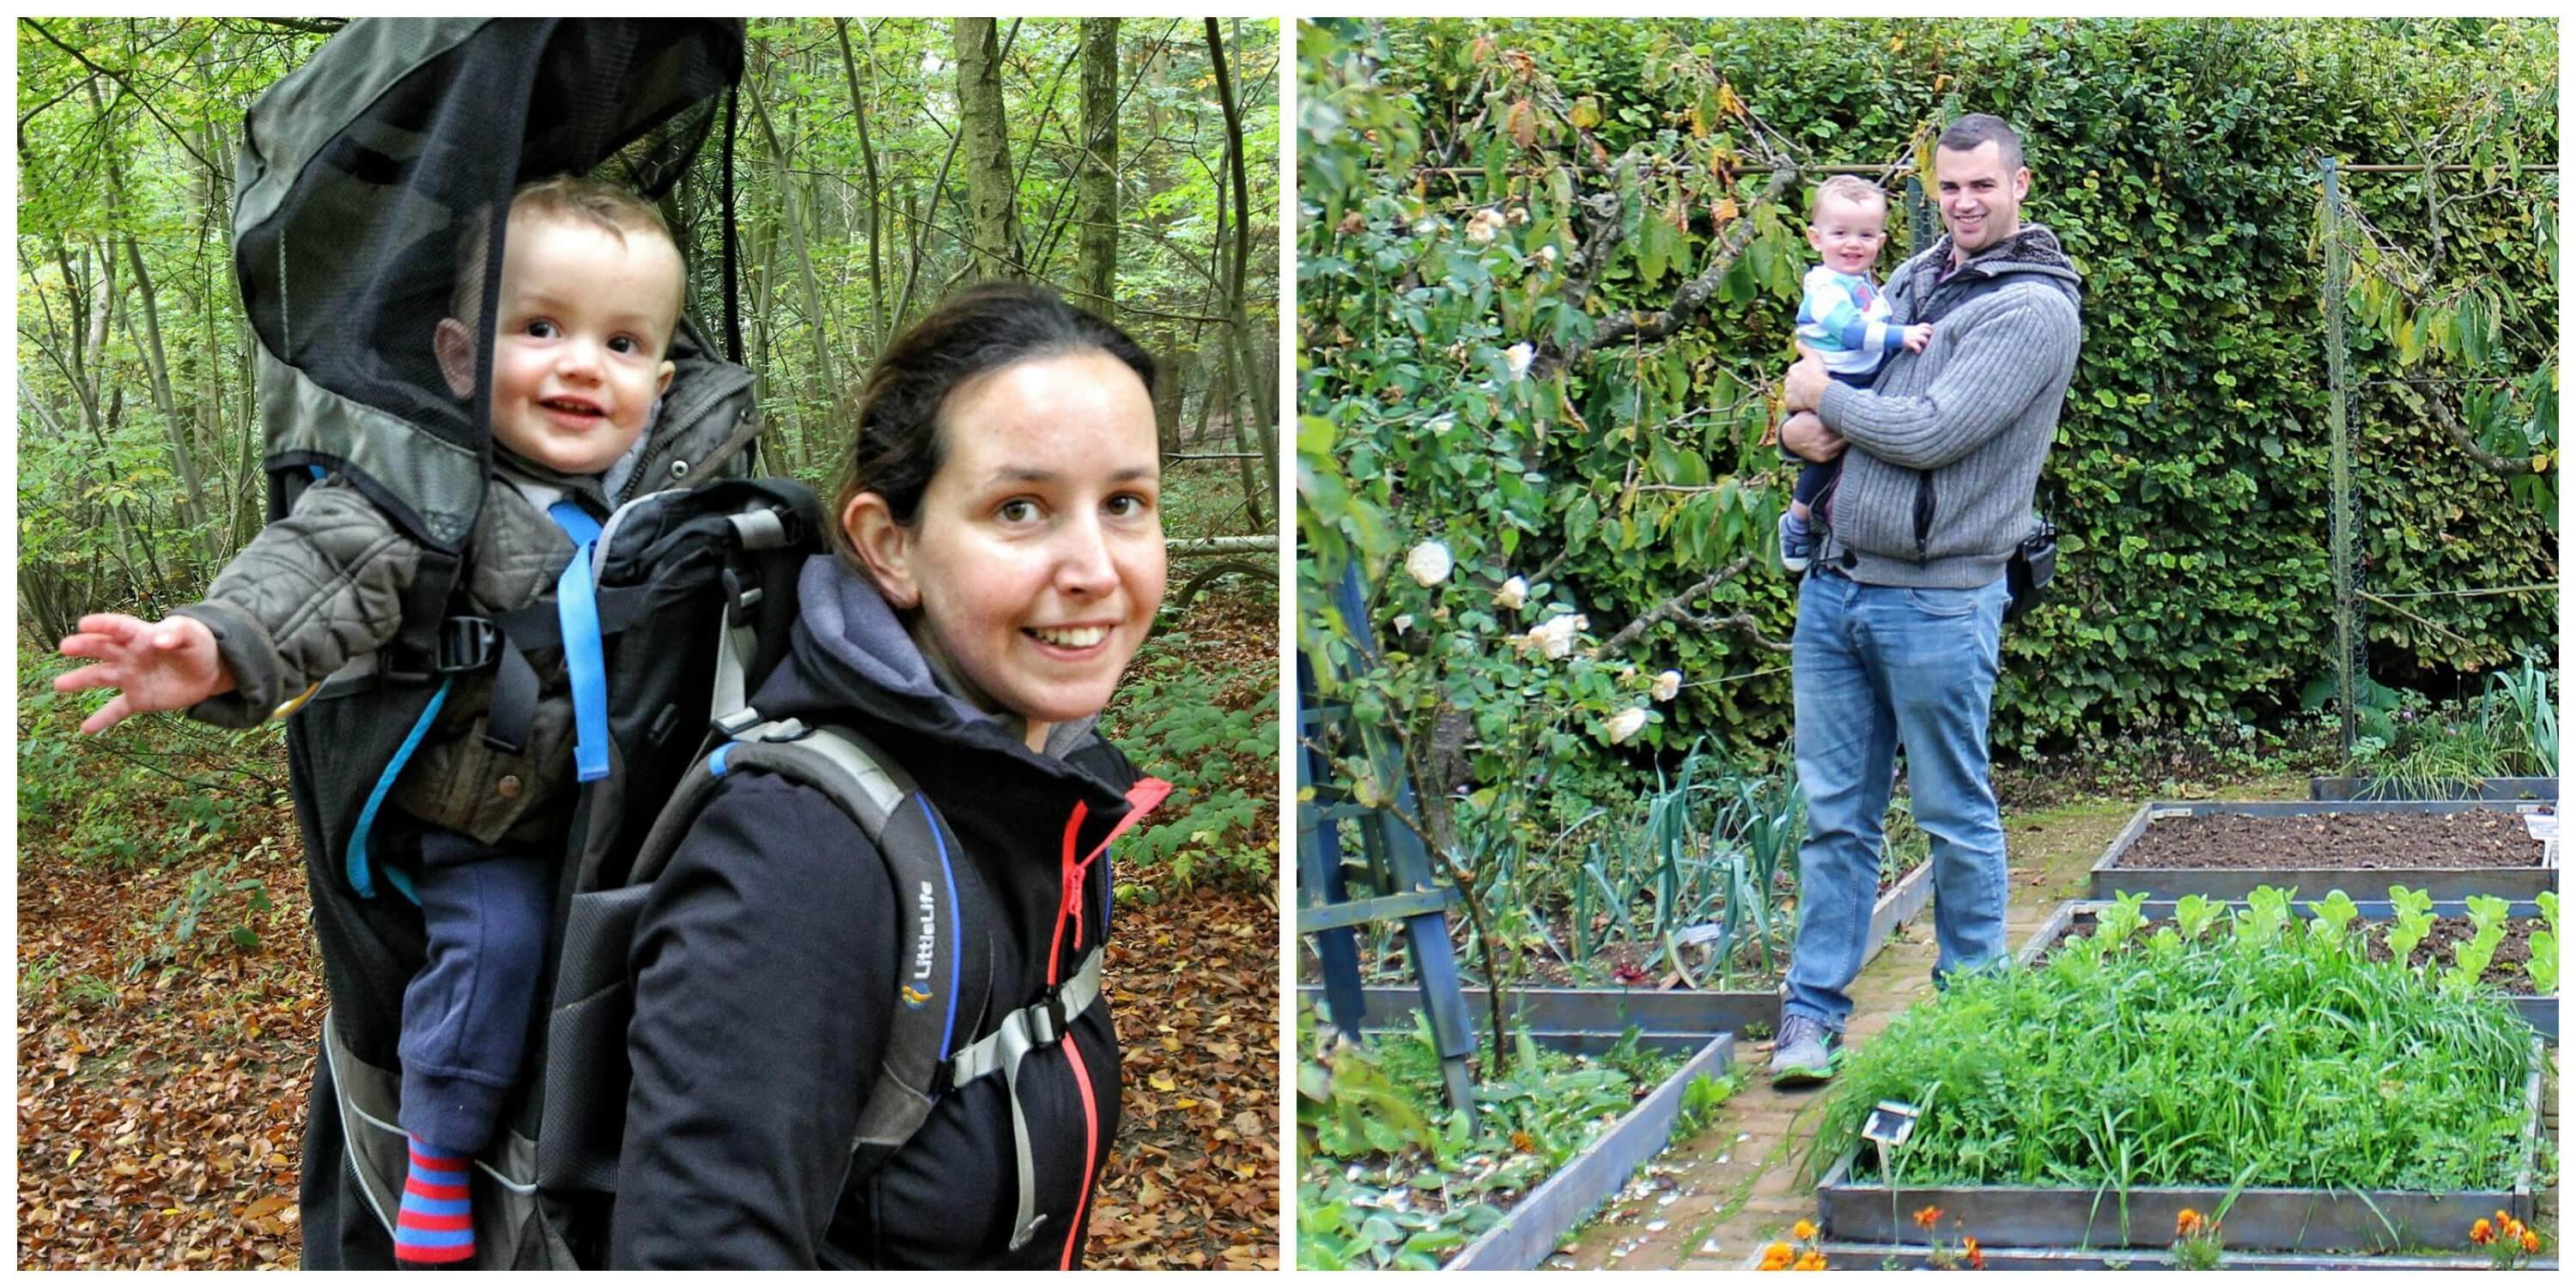 We enjoyed some great outings in October, including Badby Woods & Barnsdale Gardens